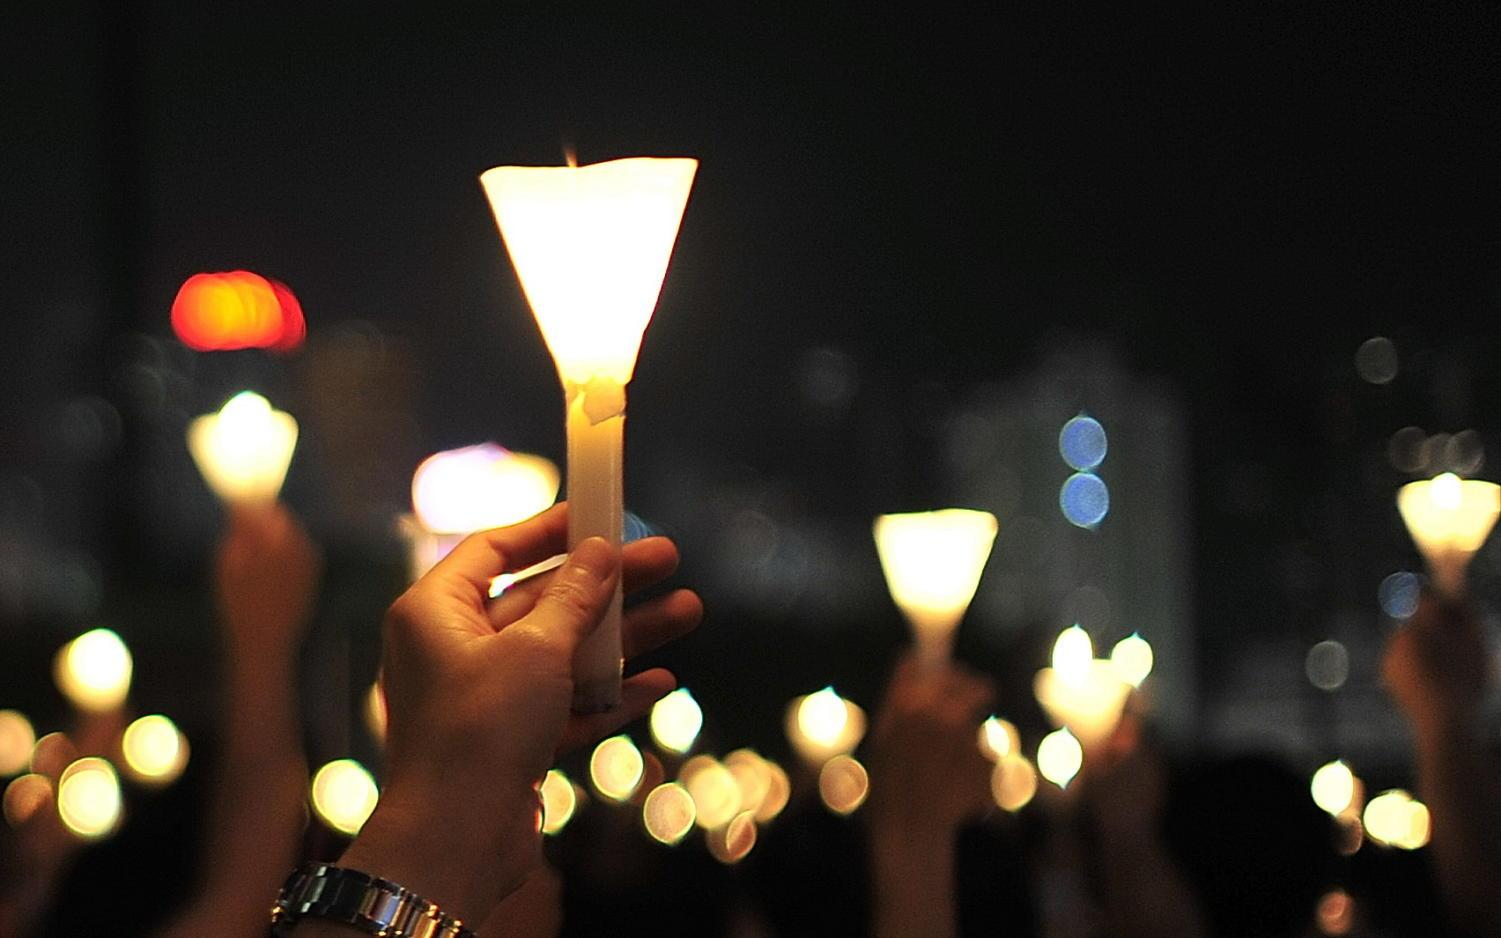 After the shooting at Marjory Stoneman Douglas High School, many participated in candle lit vigils to honor the lives of victims.